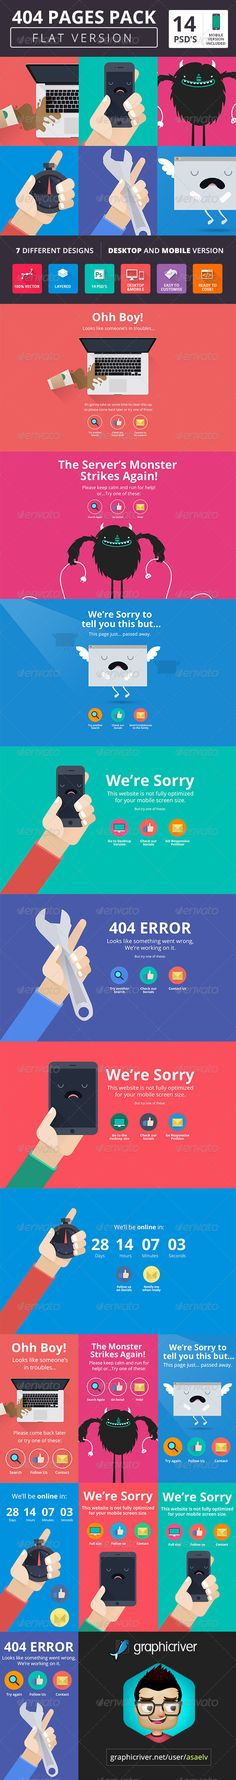 Cool #404 Page Templates and Under Construction Pages http://www.websitetemplates.org/blog/2014/05/cool-404-page-templates-and-under-construction-pages/